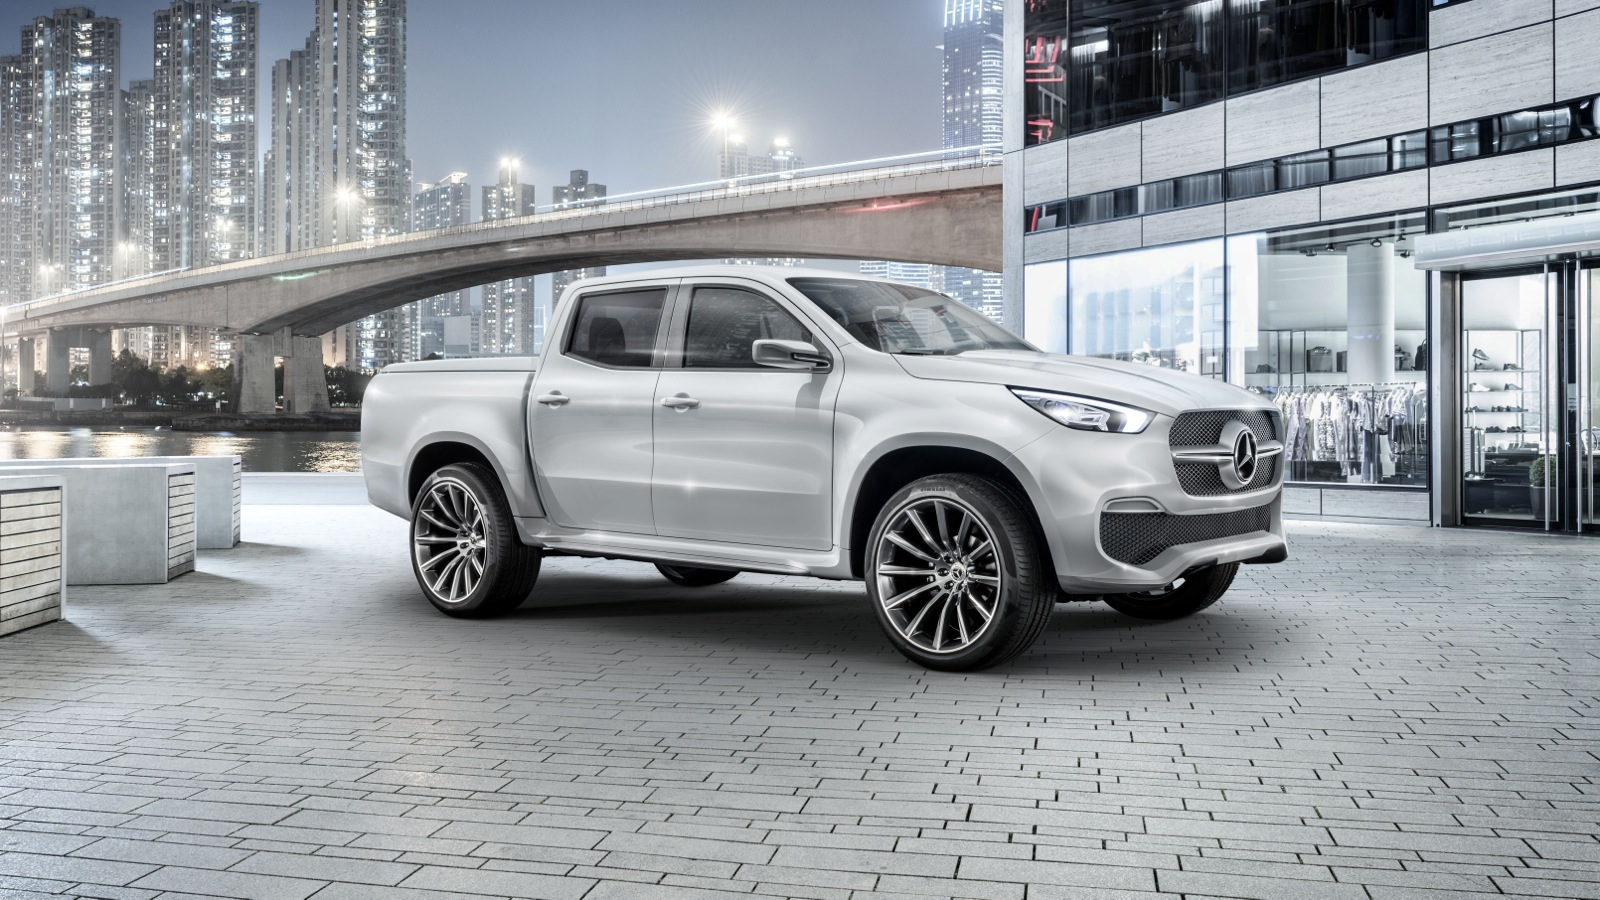 mercedes benz x class ute engine details revealed photos 1 of 4. Black Bedroom Furniture Sets. Home Design Ideas